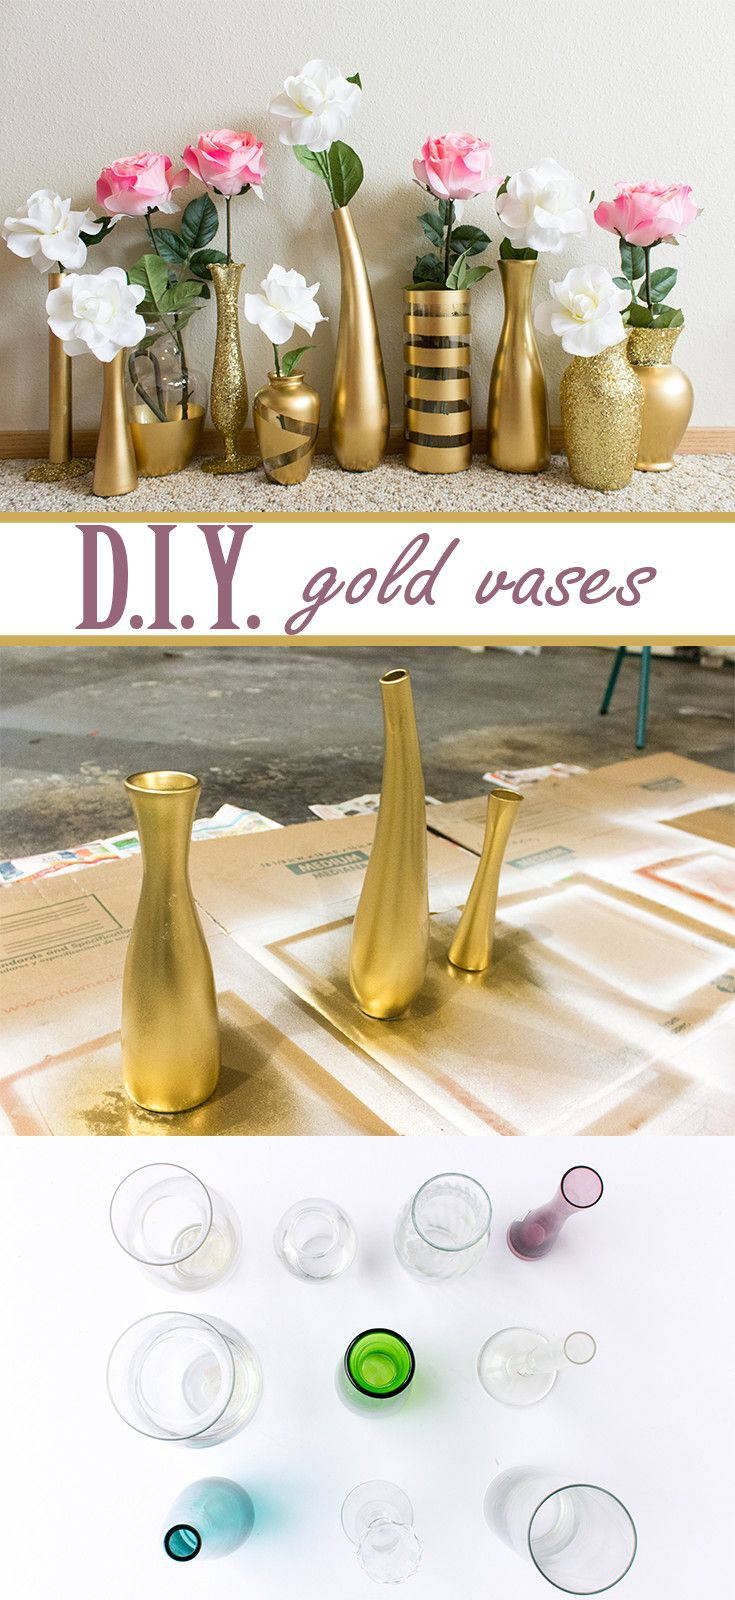 best 25 inexpensive home decor ideas on pinterest rustic apartment decor rustic chic decor and wall decor arrangements - Cheap Home Decor Stores